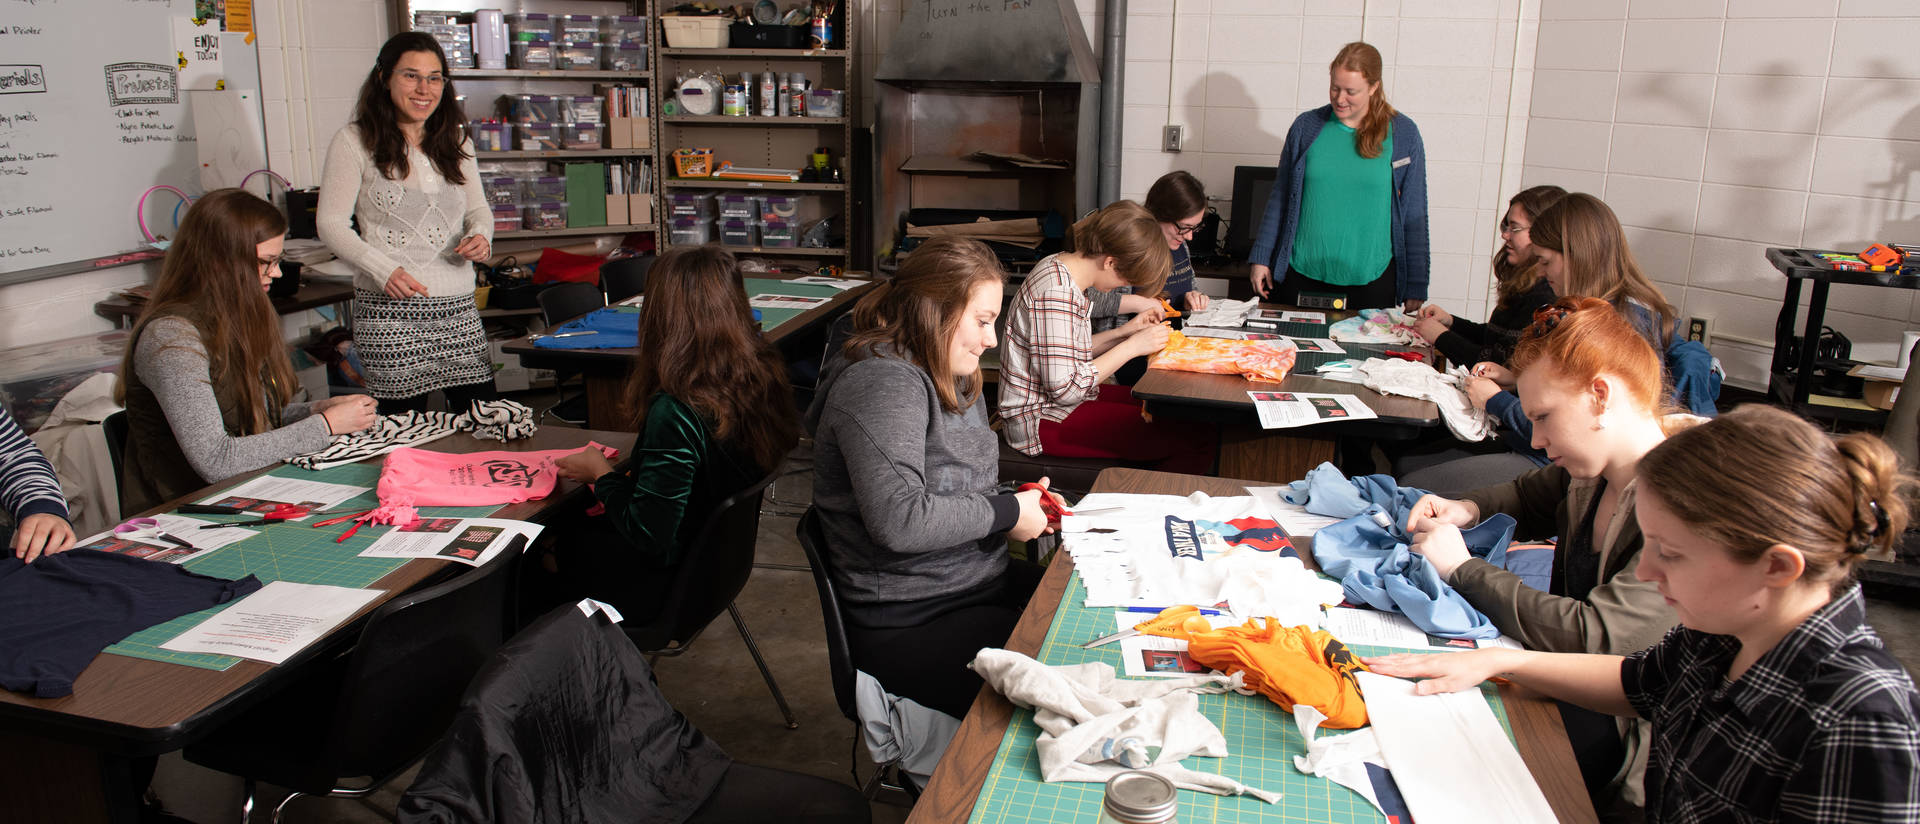 UW-Eau Claire French students creating projects in makerspace